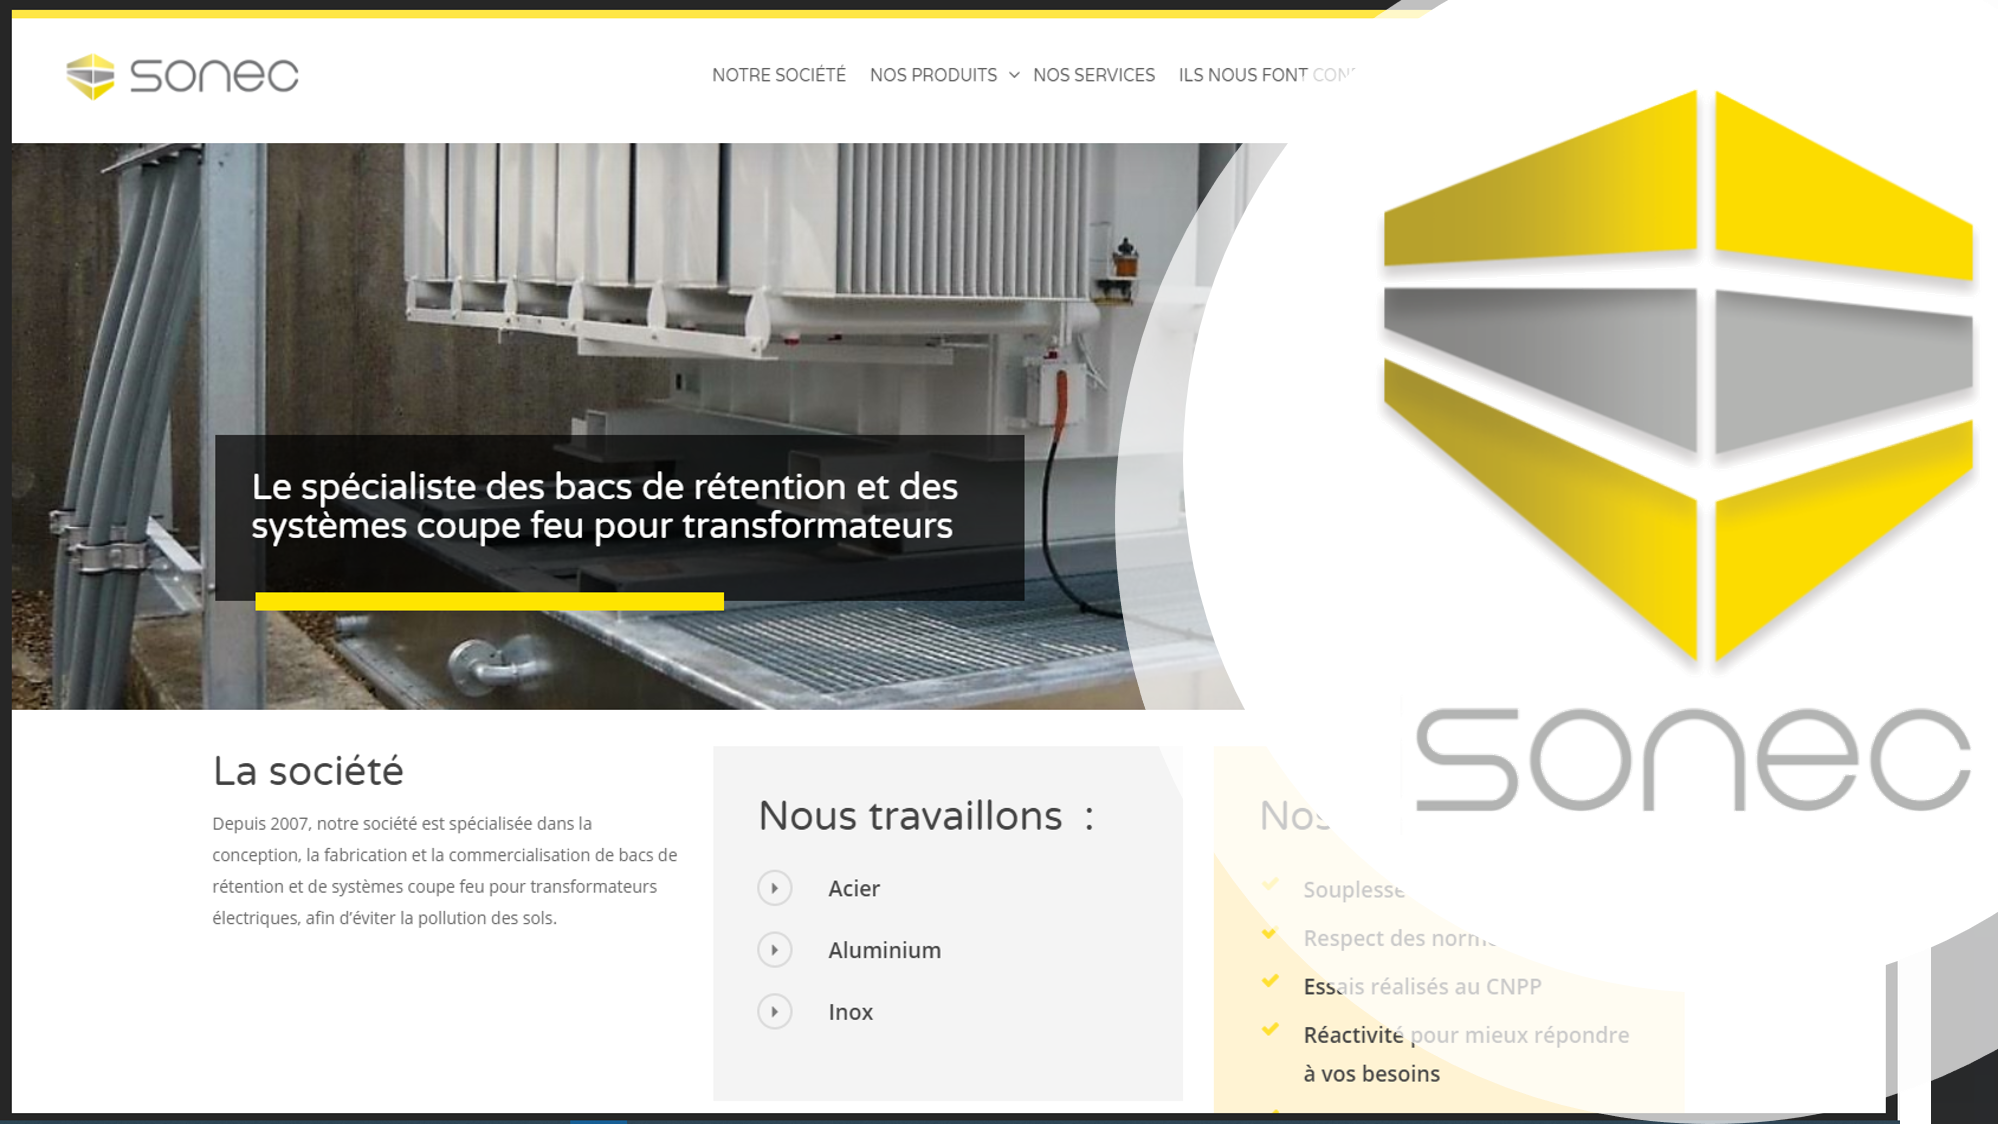 At the end of 2018 SANERGRID acquired SONEC